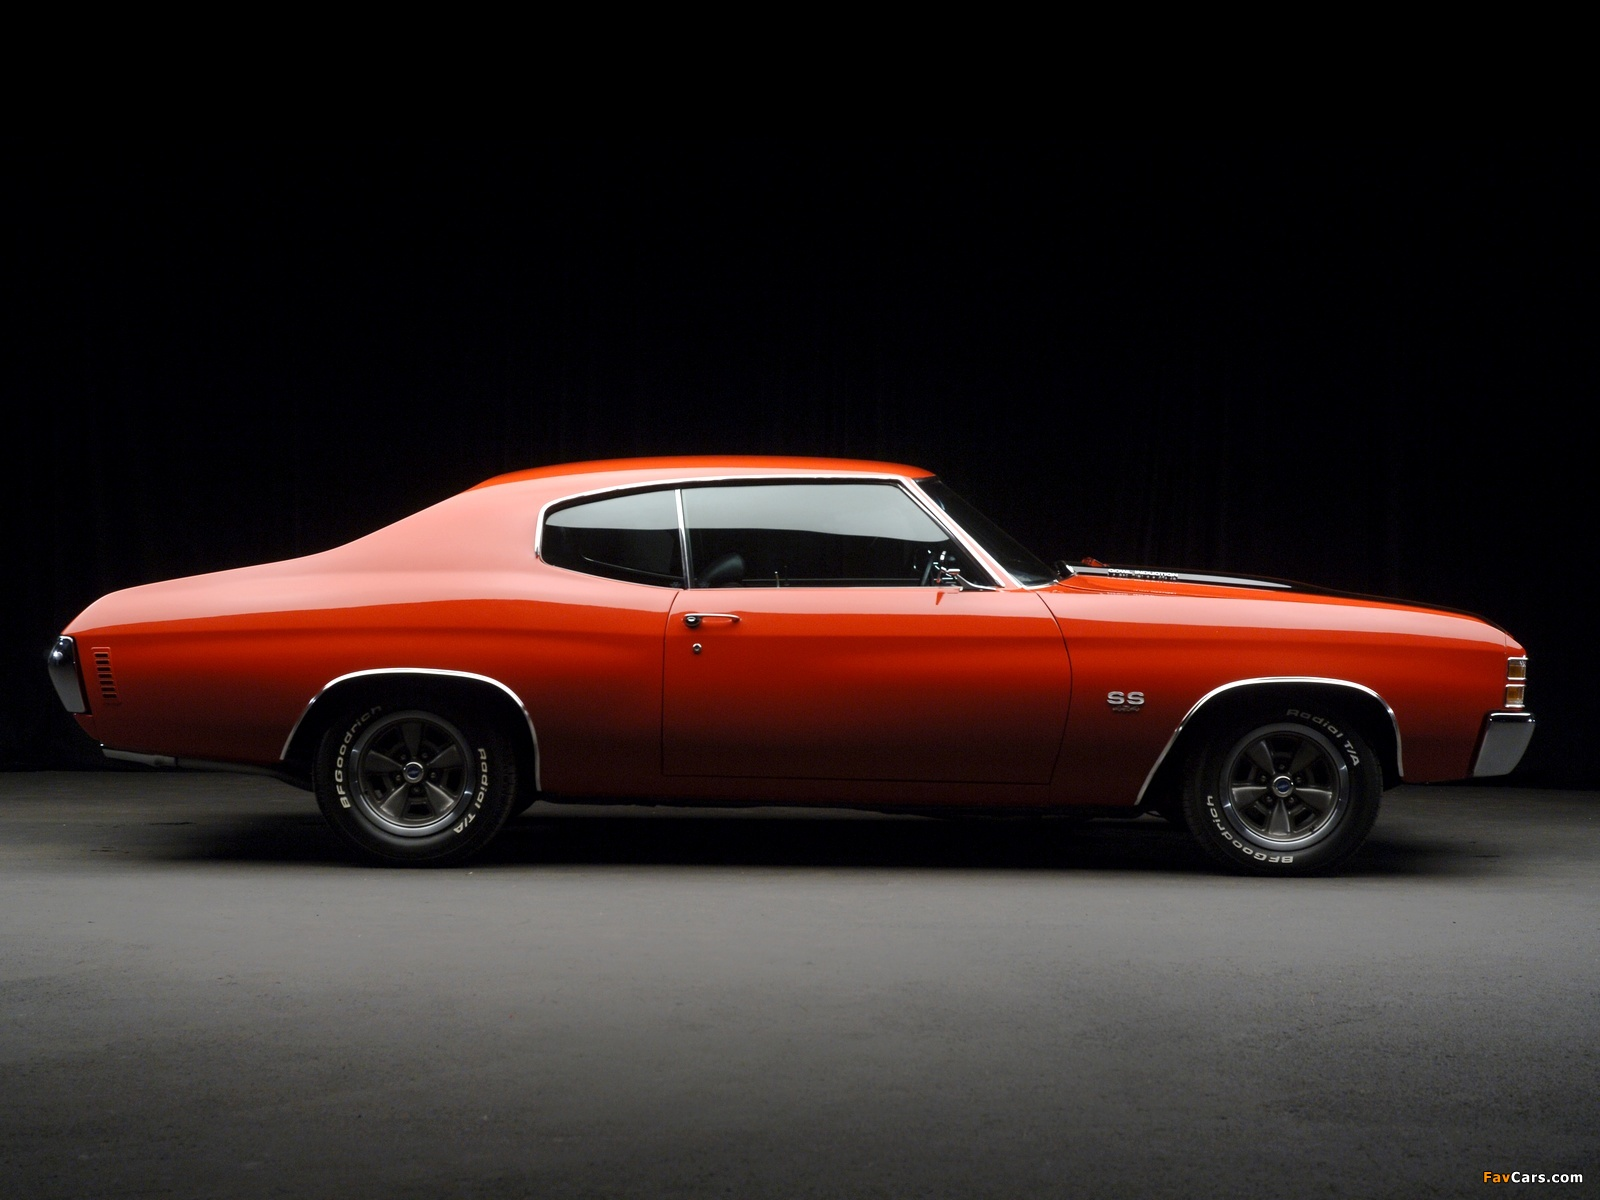 Chevelle Ss >> Chevrolet Chevelle SS Hardtop Coupe 1972 images (1600x1200)